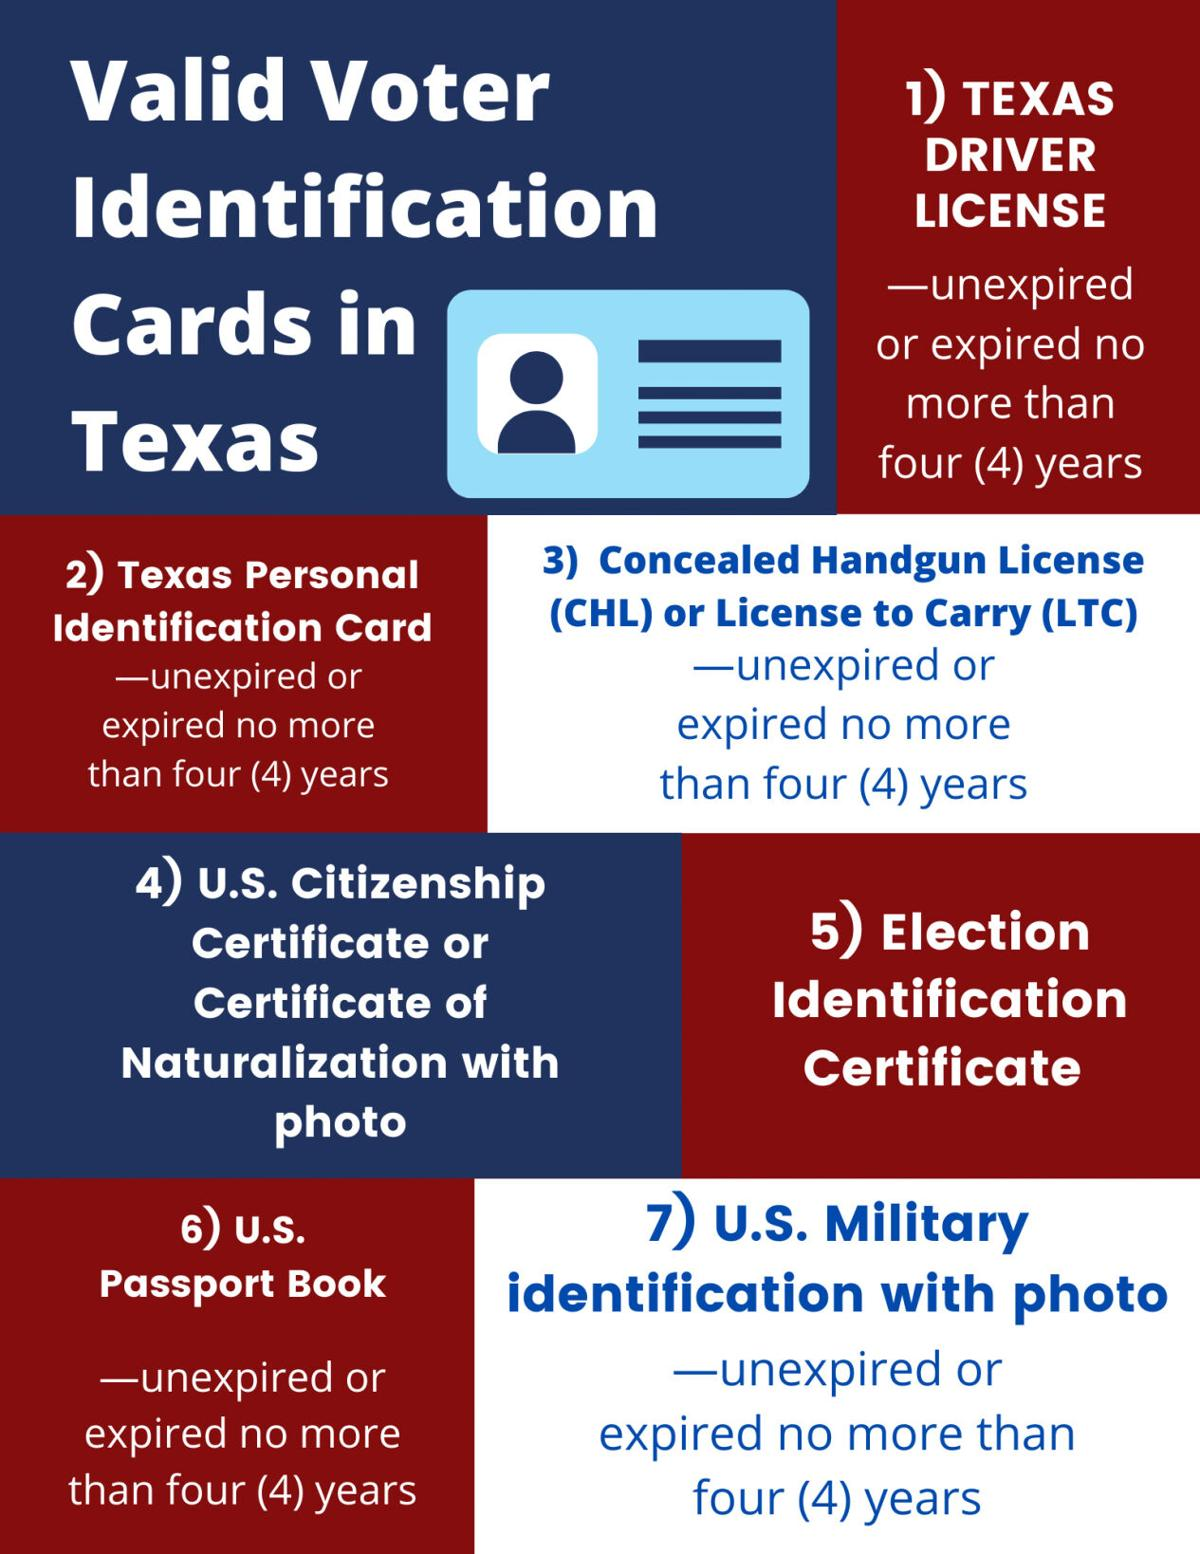 Valid Voter ID Cards in Texas